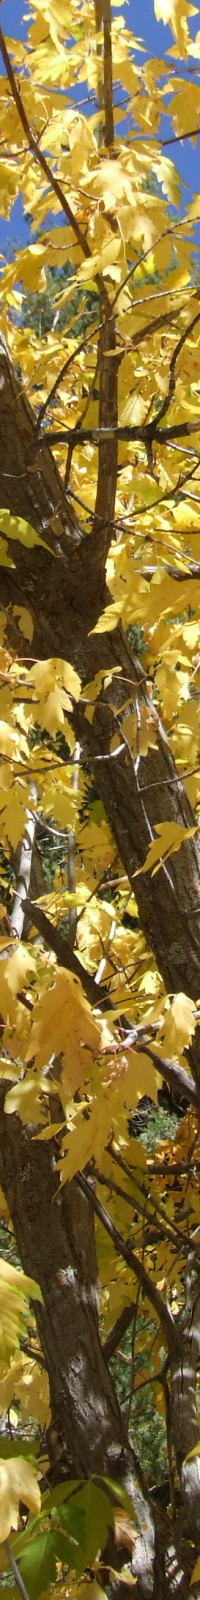 Autumn Trees is a picture taken by Kitchener-Waterloo Psychologist (and amateur photographer) Dr. Val Daigen.